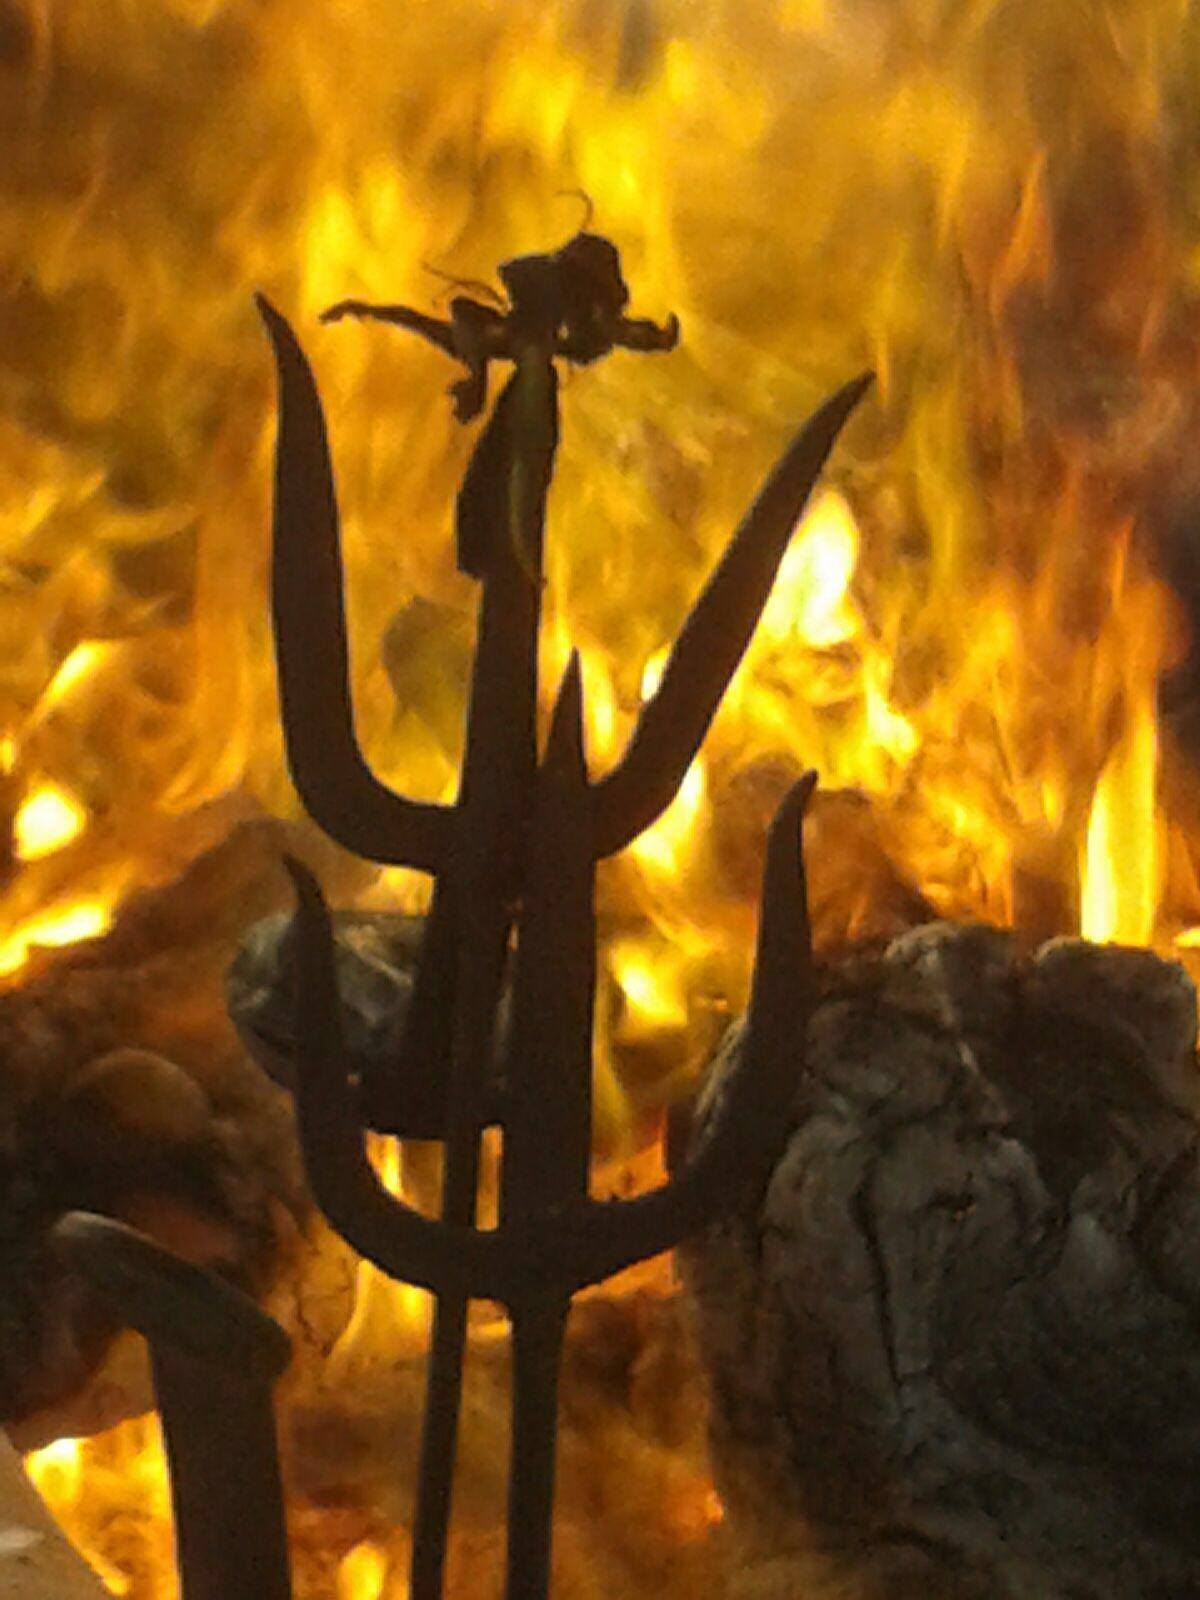 Holy_Fire_by_Jaman_Singh